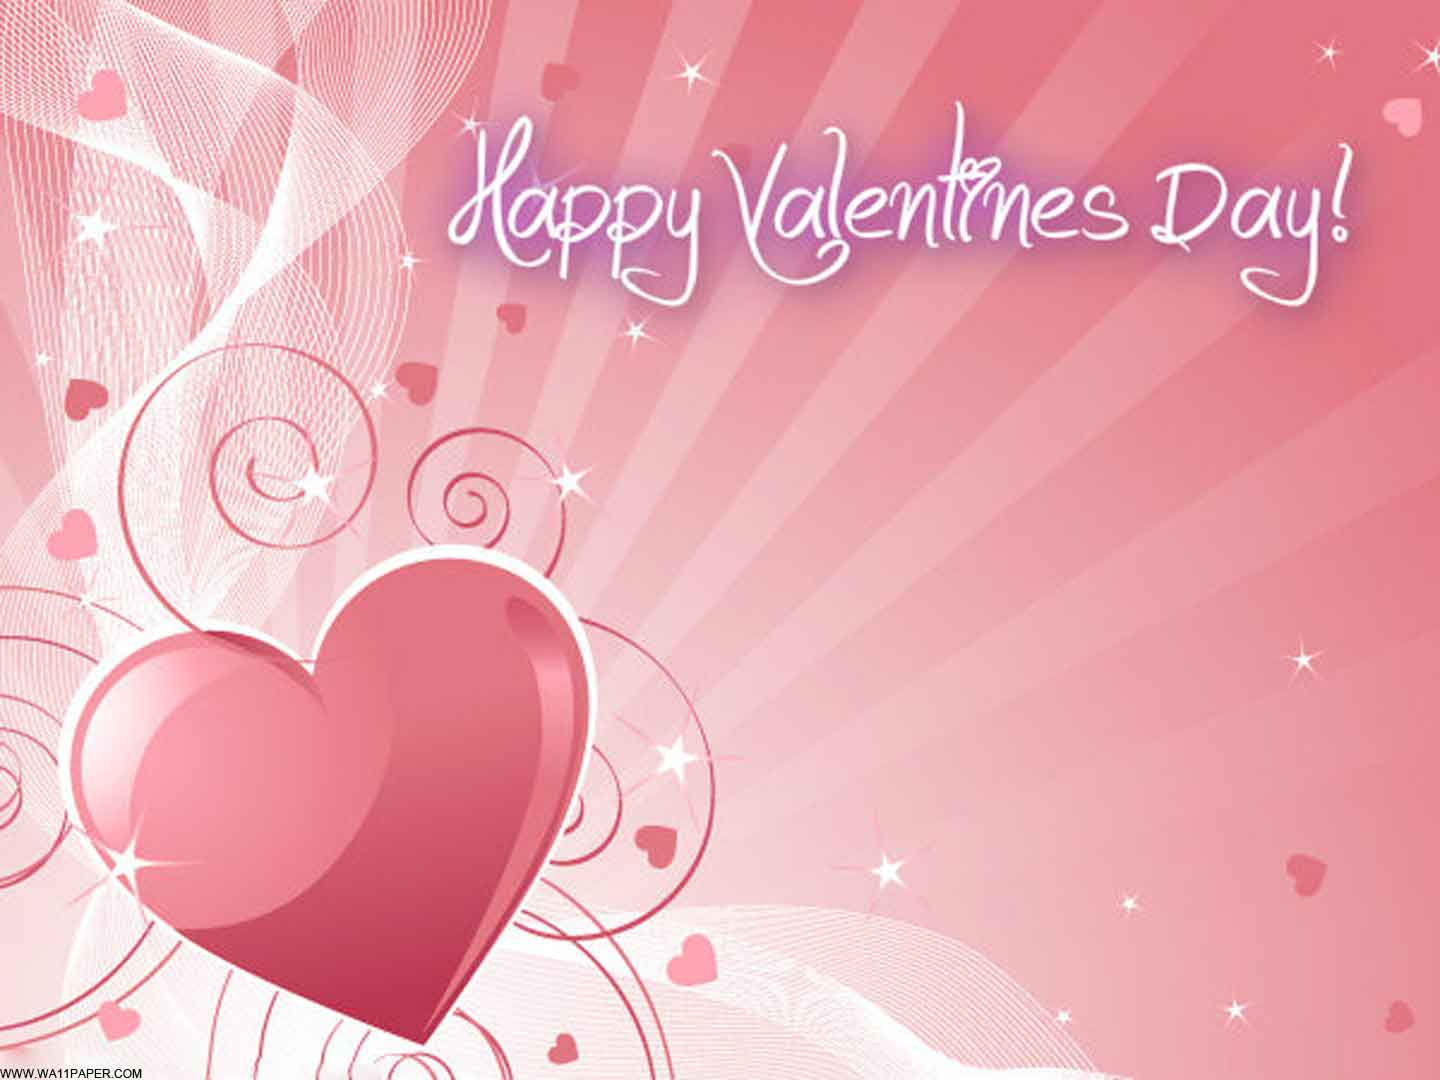 valentines day hearts picture 2015 heart photos and wallpapers 1440x1080